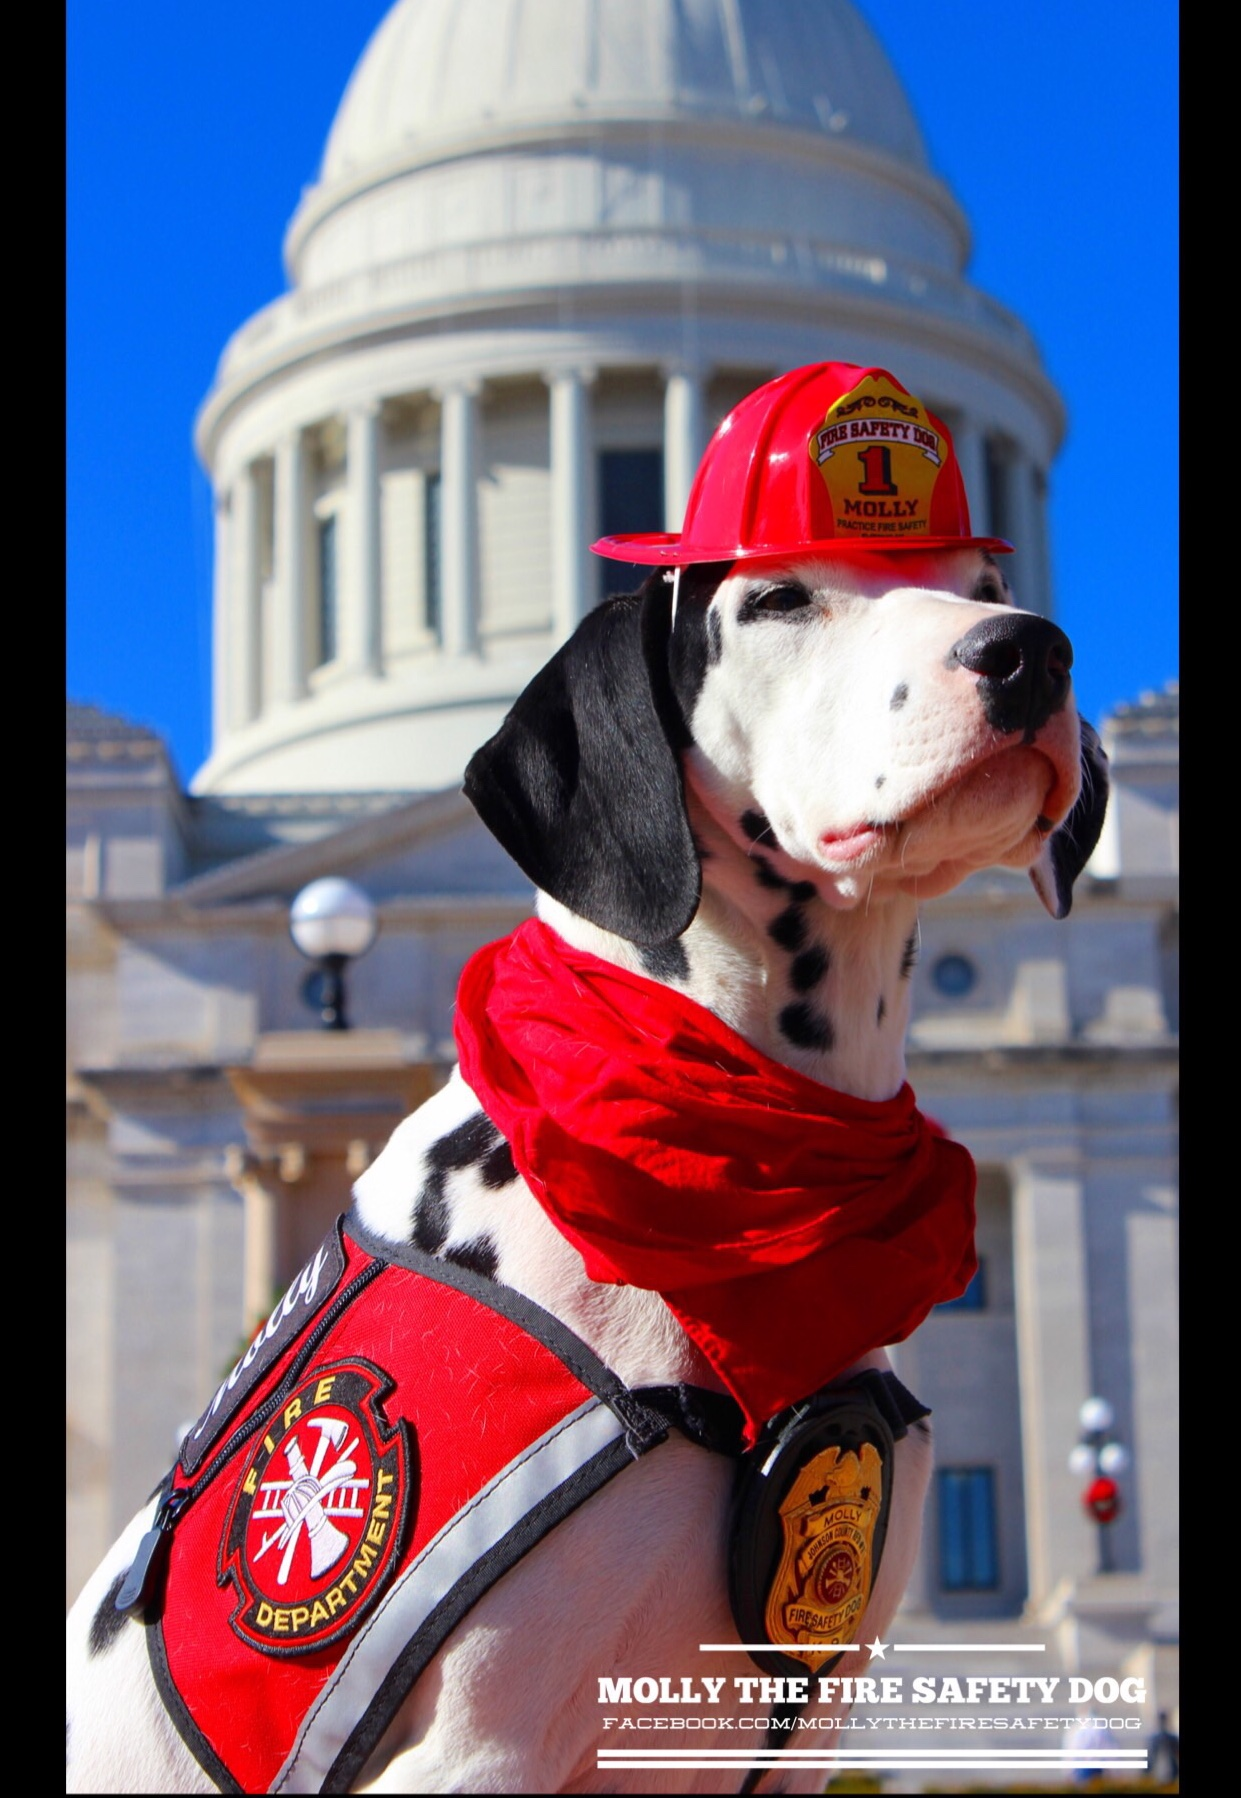 Follow Molly, the Fire Safety Dog, on her Superpowers Dogs' Tour! #MollysRoadTrip